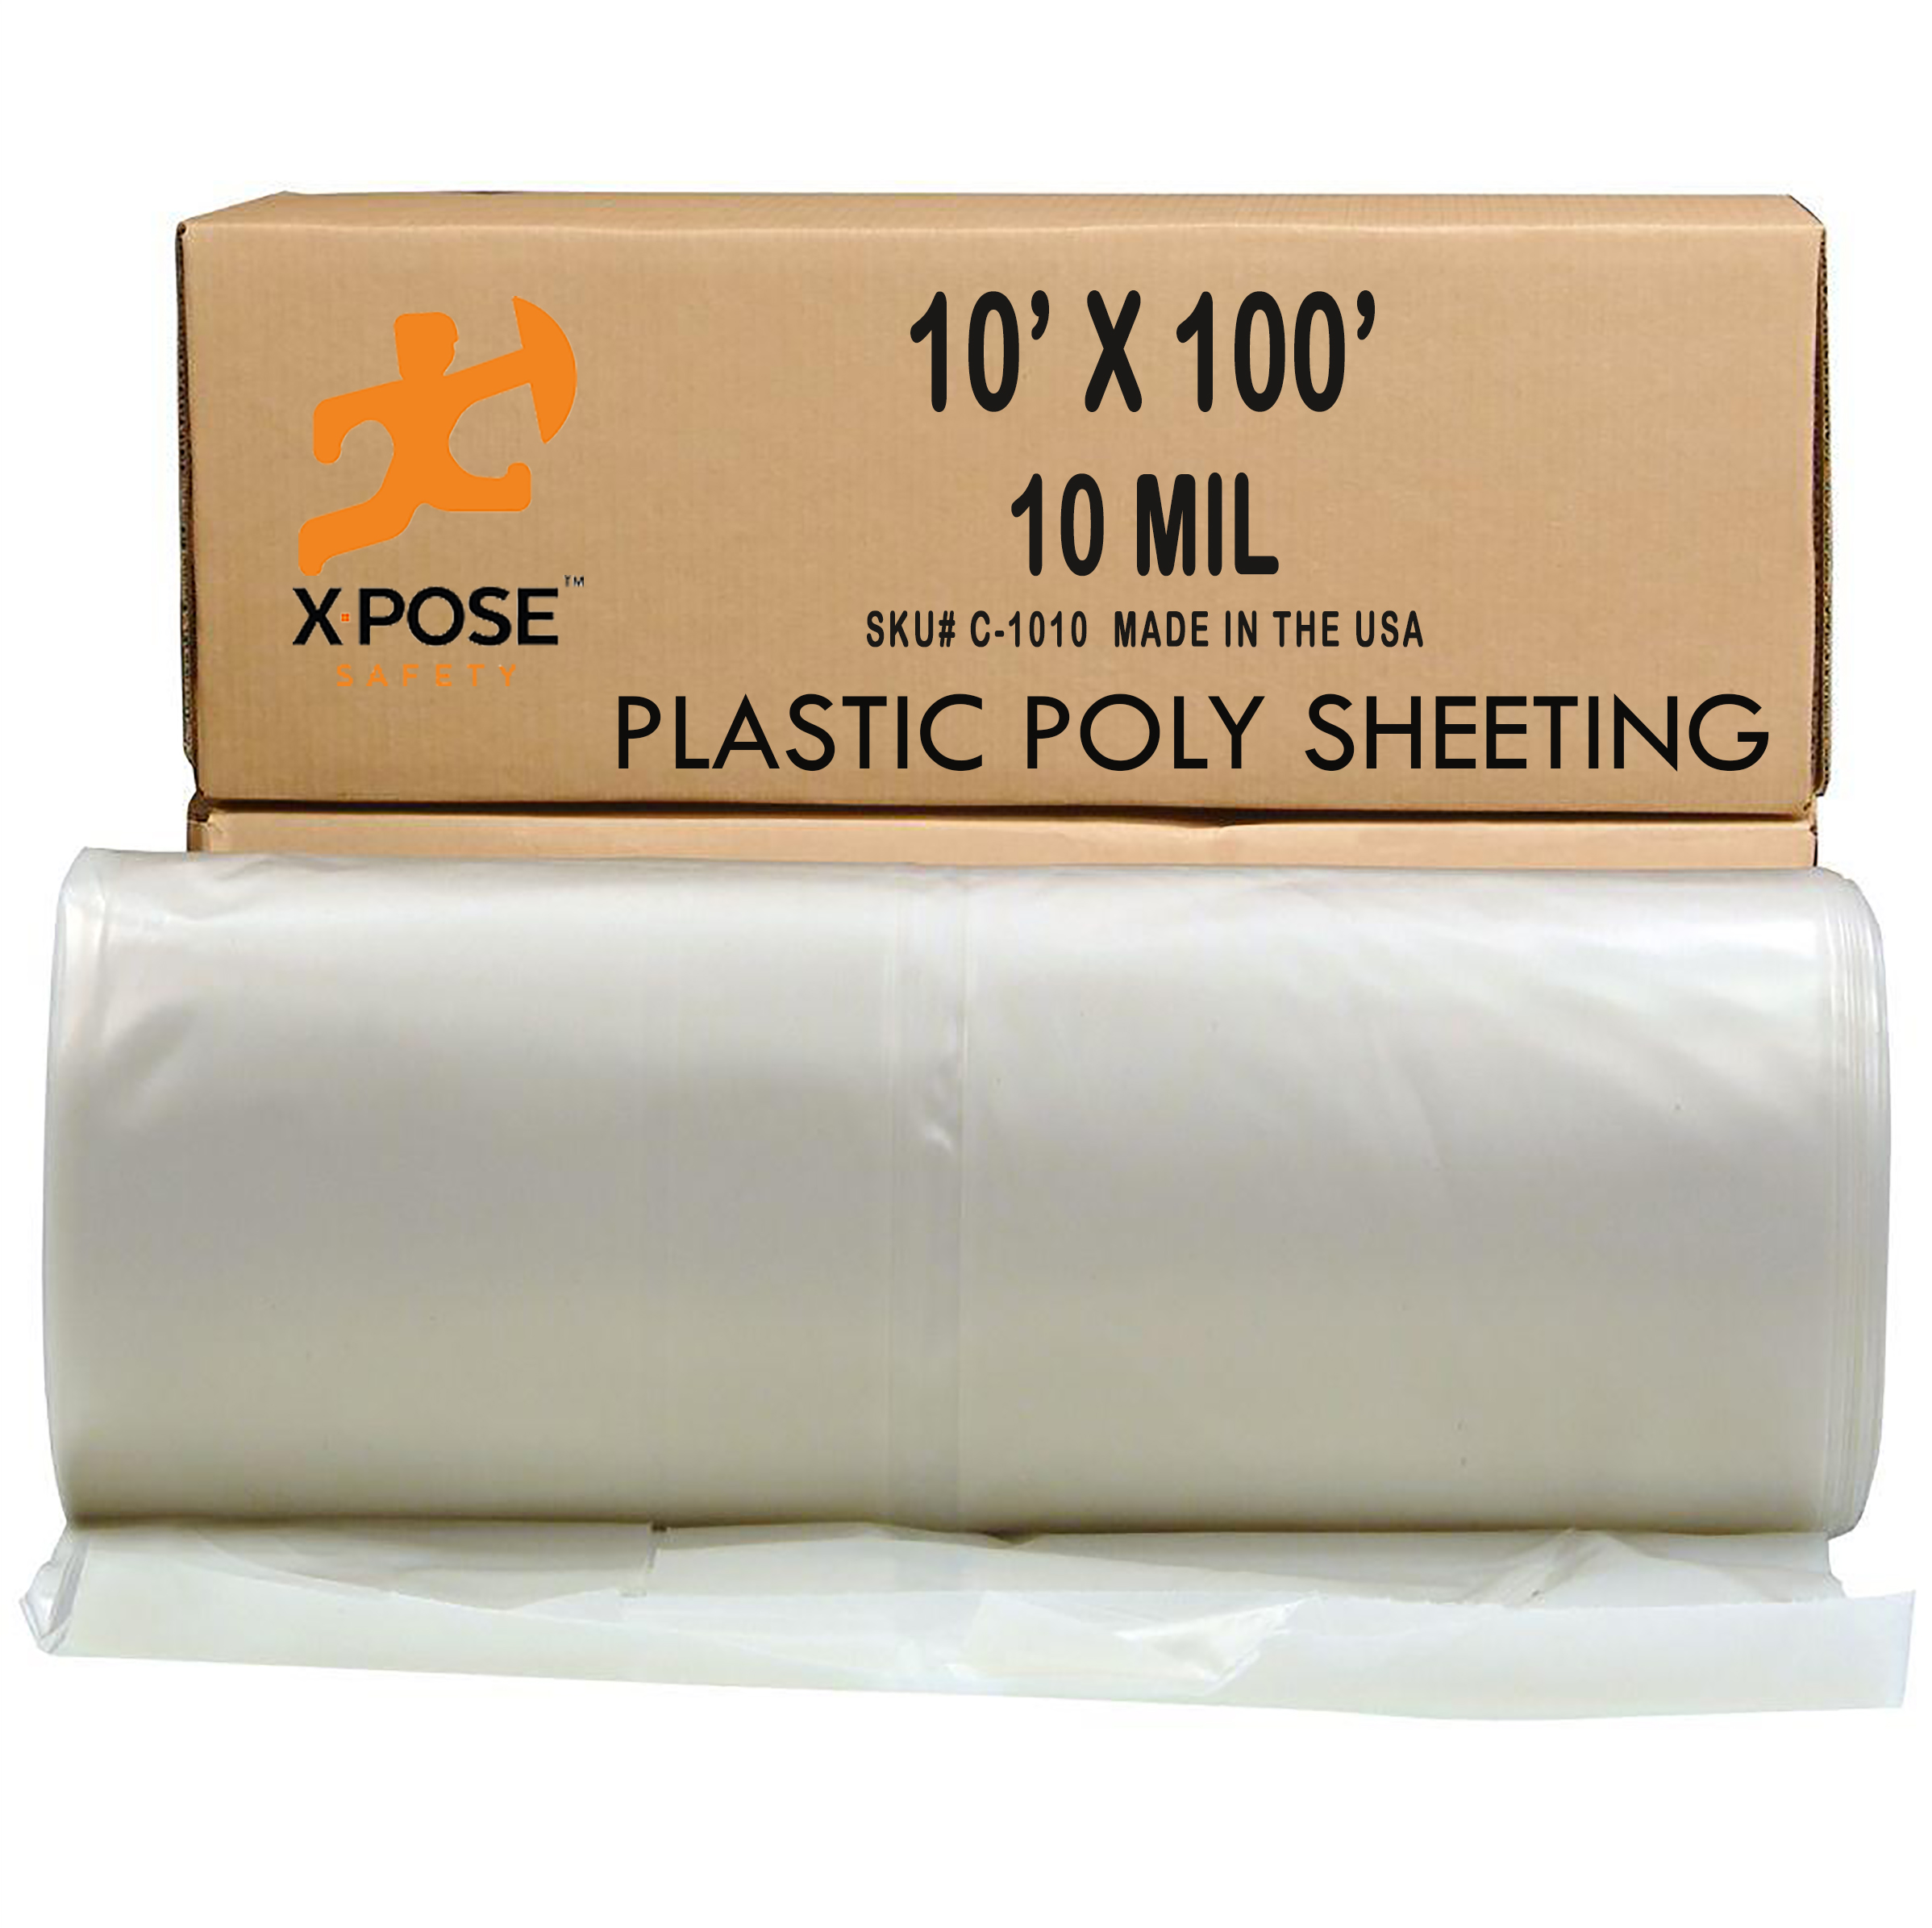 Clear Plastic Poly Sheeting 10' x 100' 10 mil C-1010